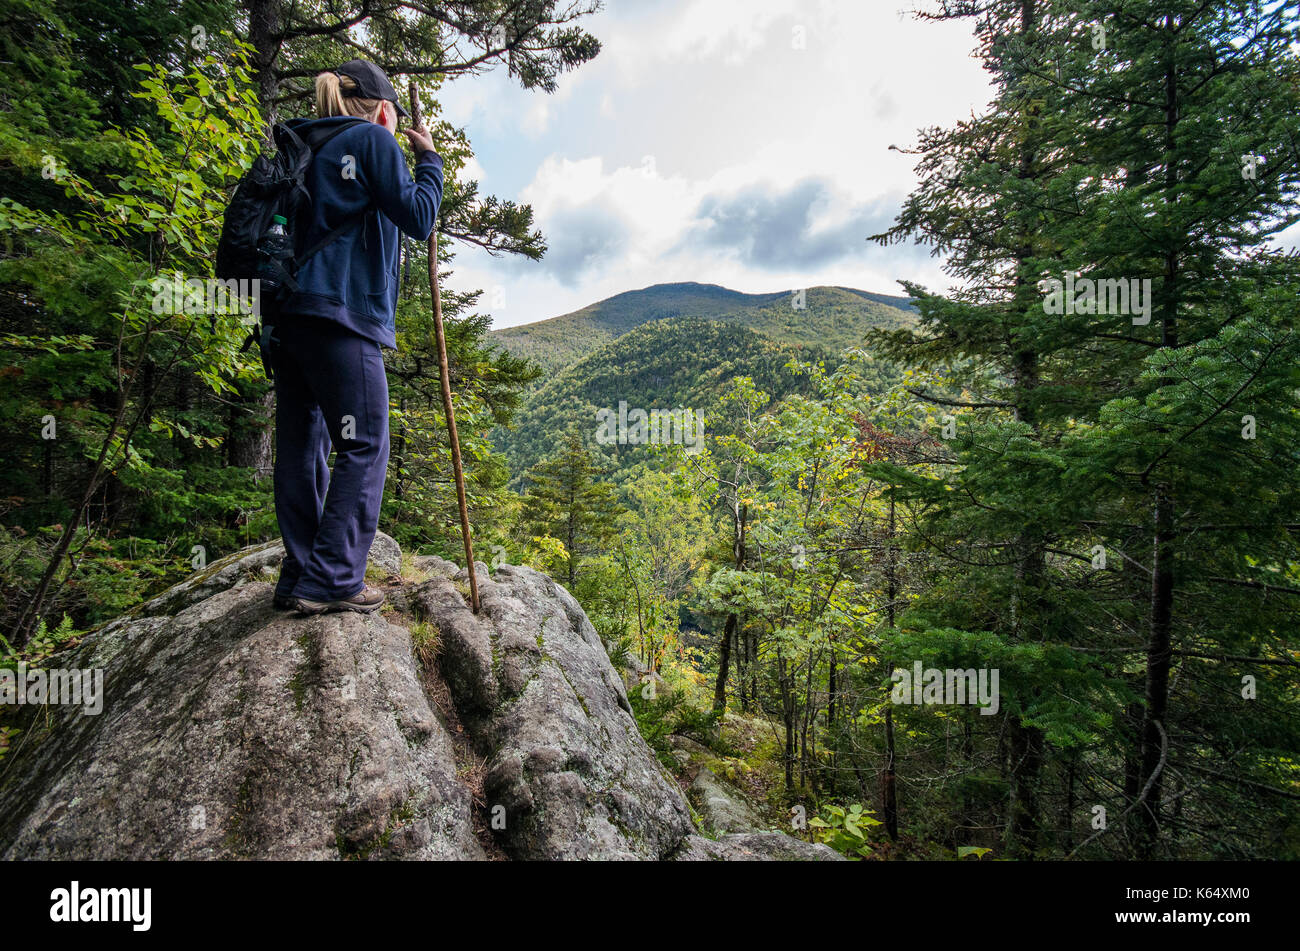 New york essex county keene - Woman Looking Over A Cliff On Pitchoff Mountain In Keene New York Stock Image